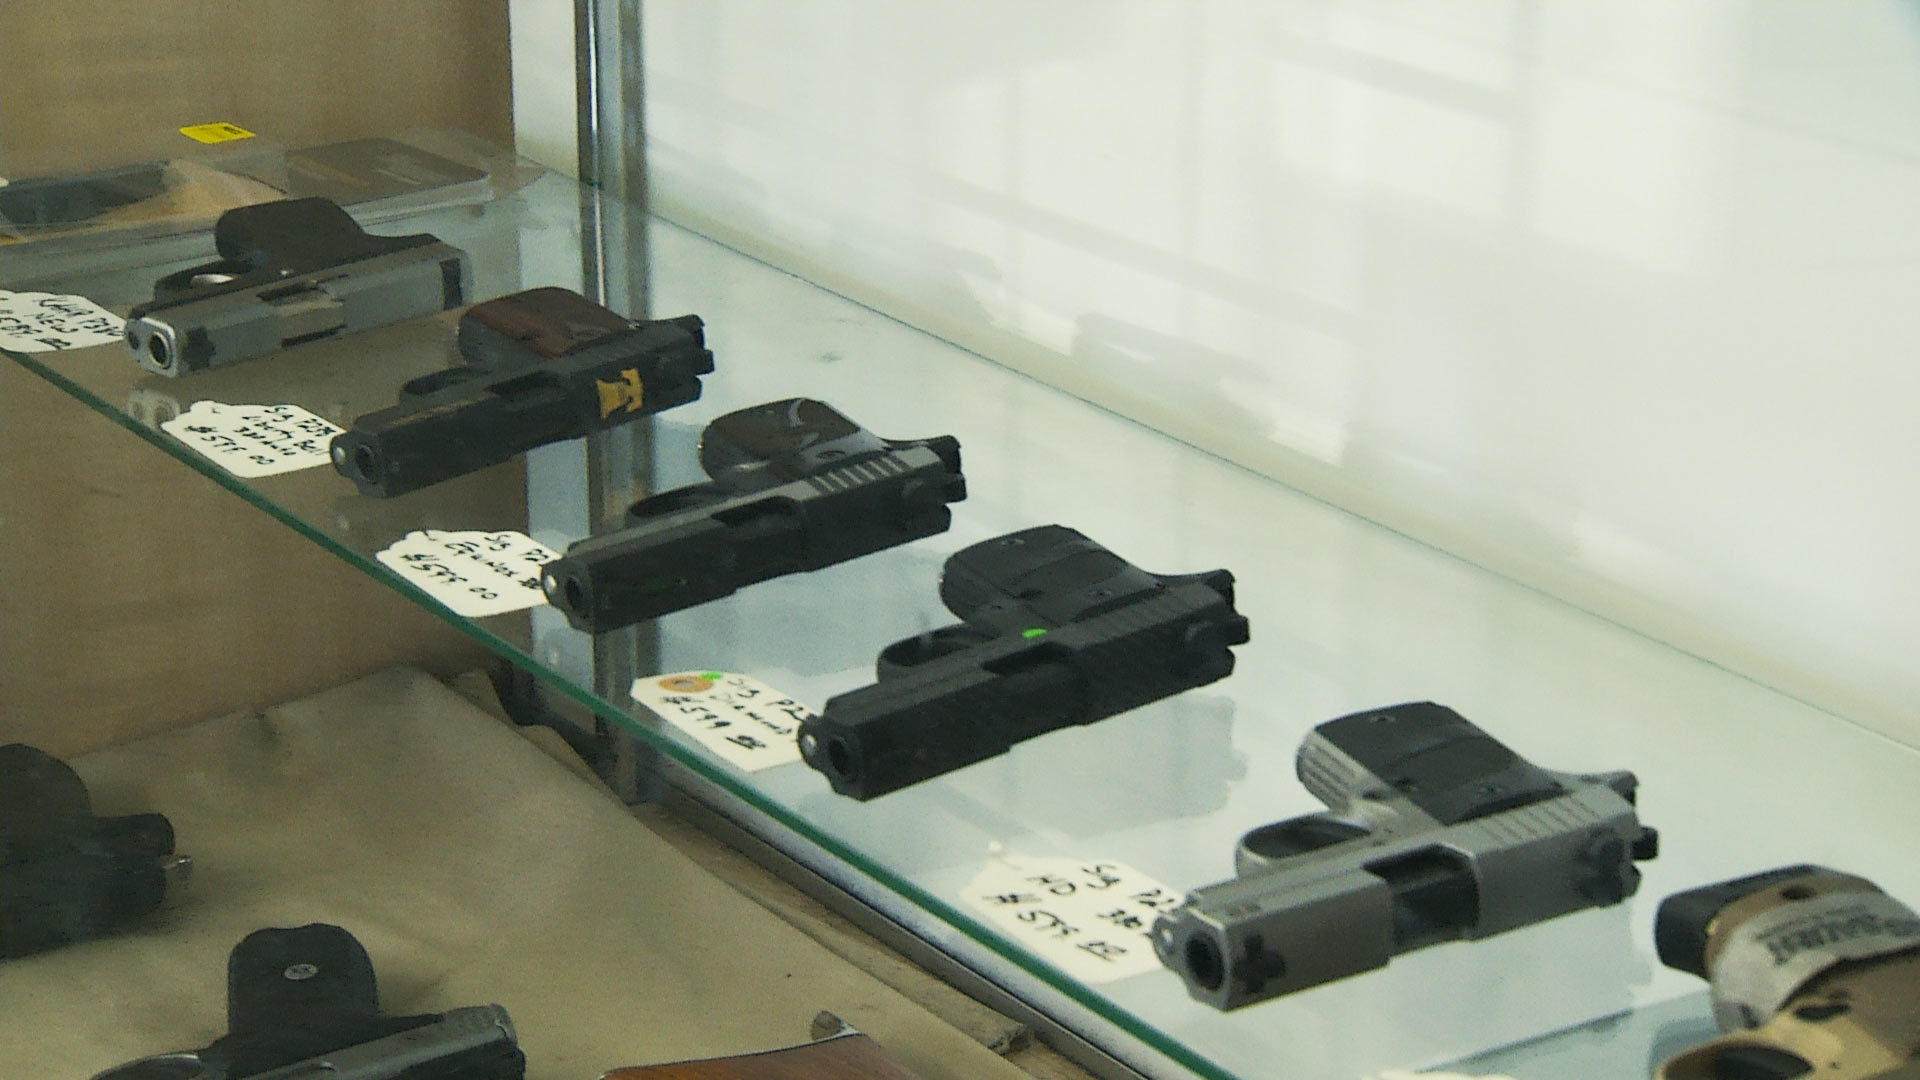 Guns on display in a Tucson store.